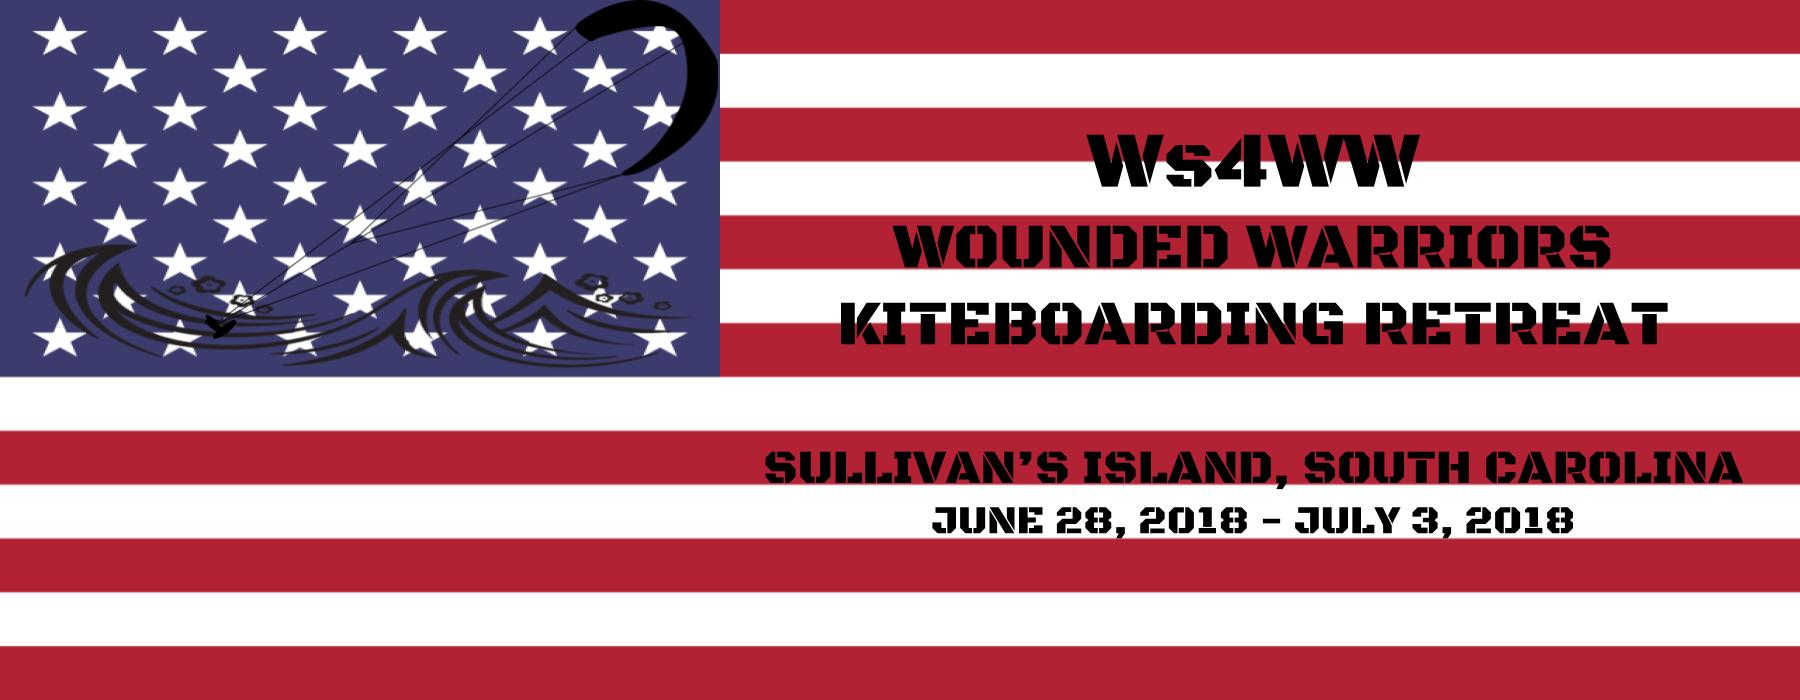 SEALAND SPORTS ANNUAL WOUNDED WARRIOR KITEBOARDING RETREAT!